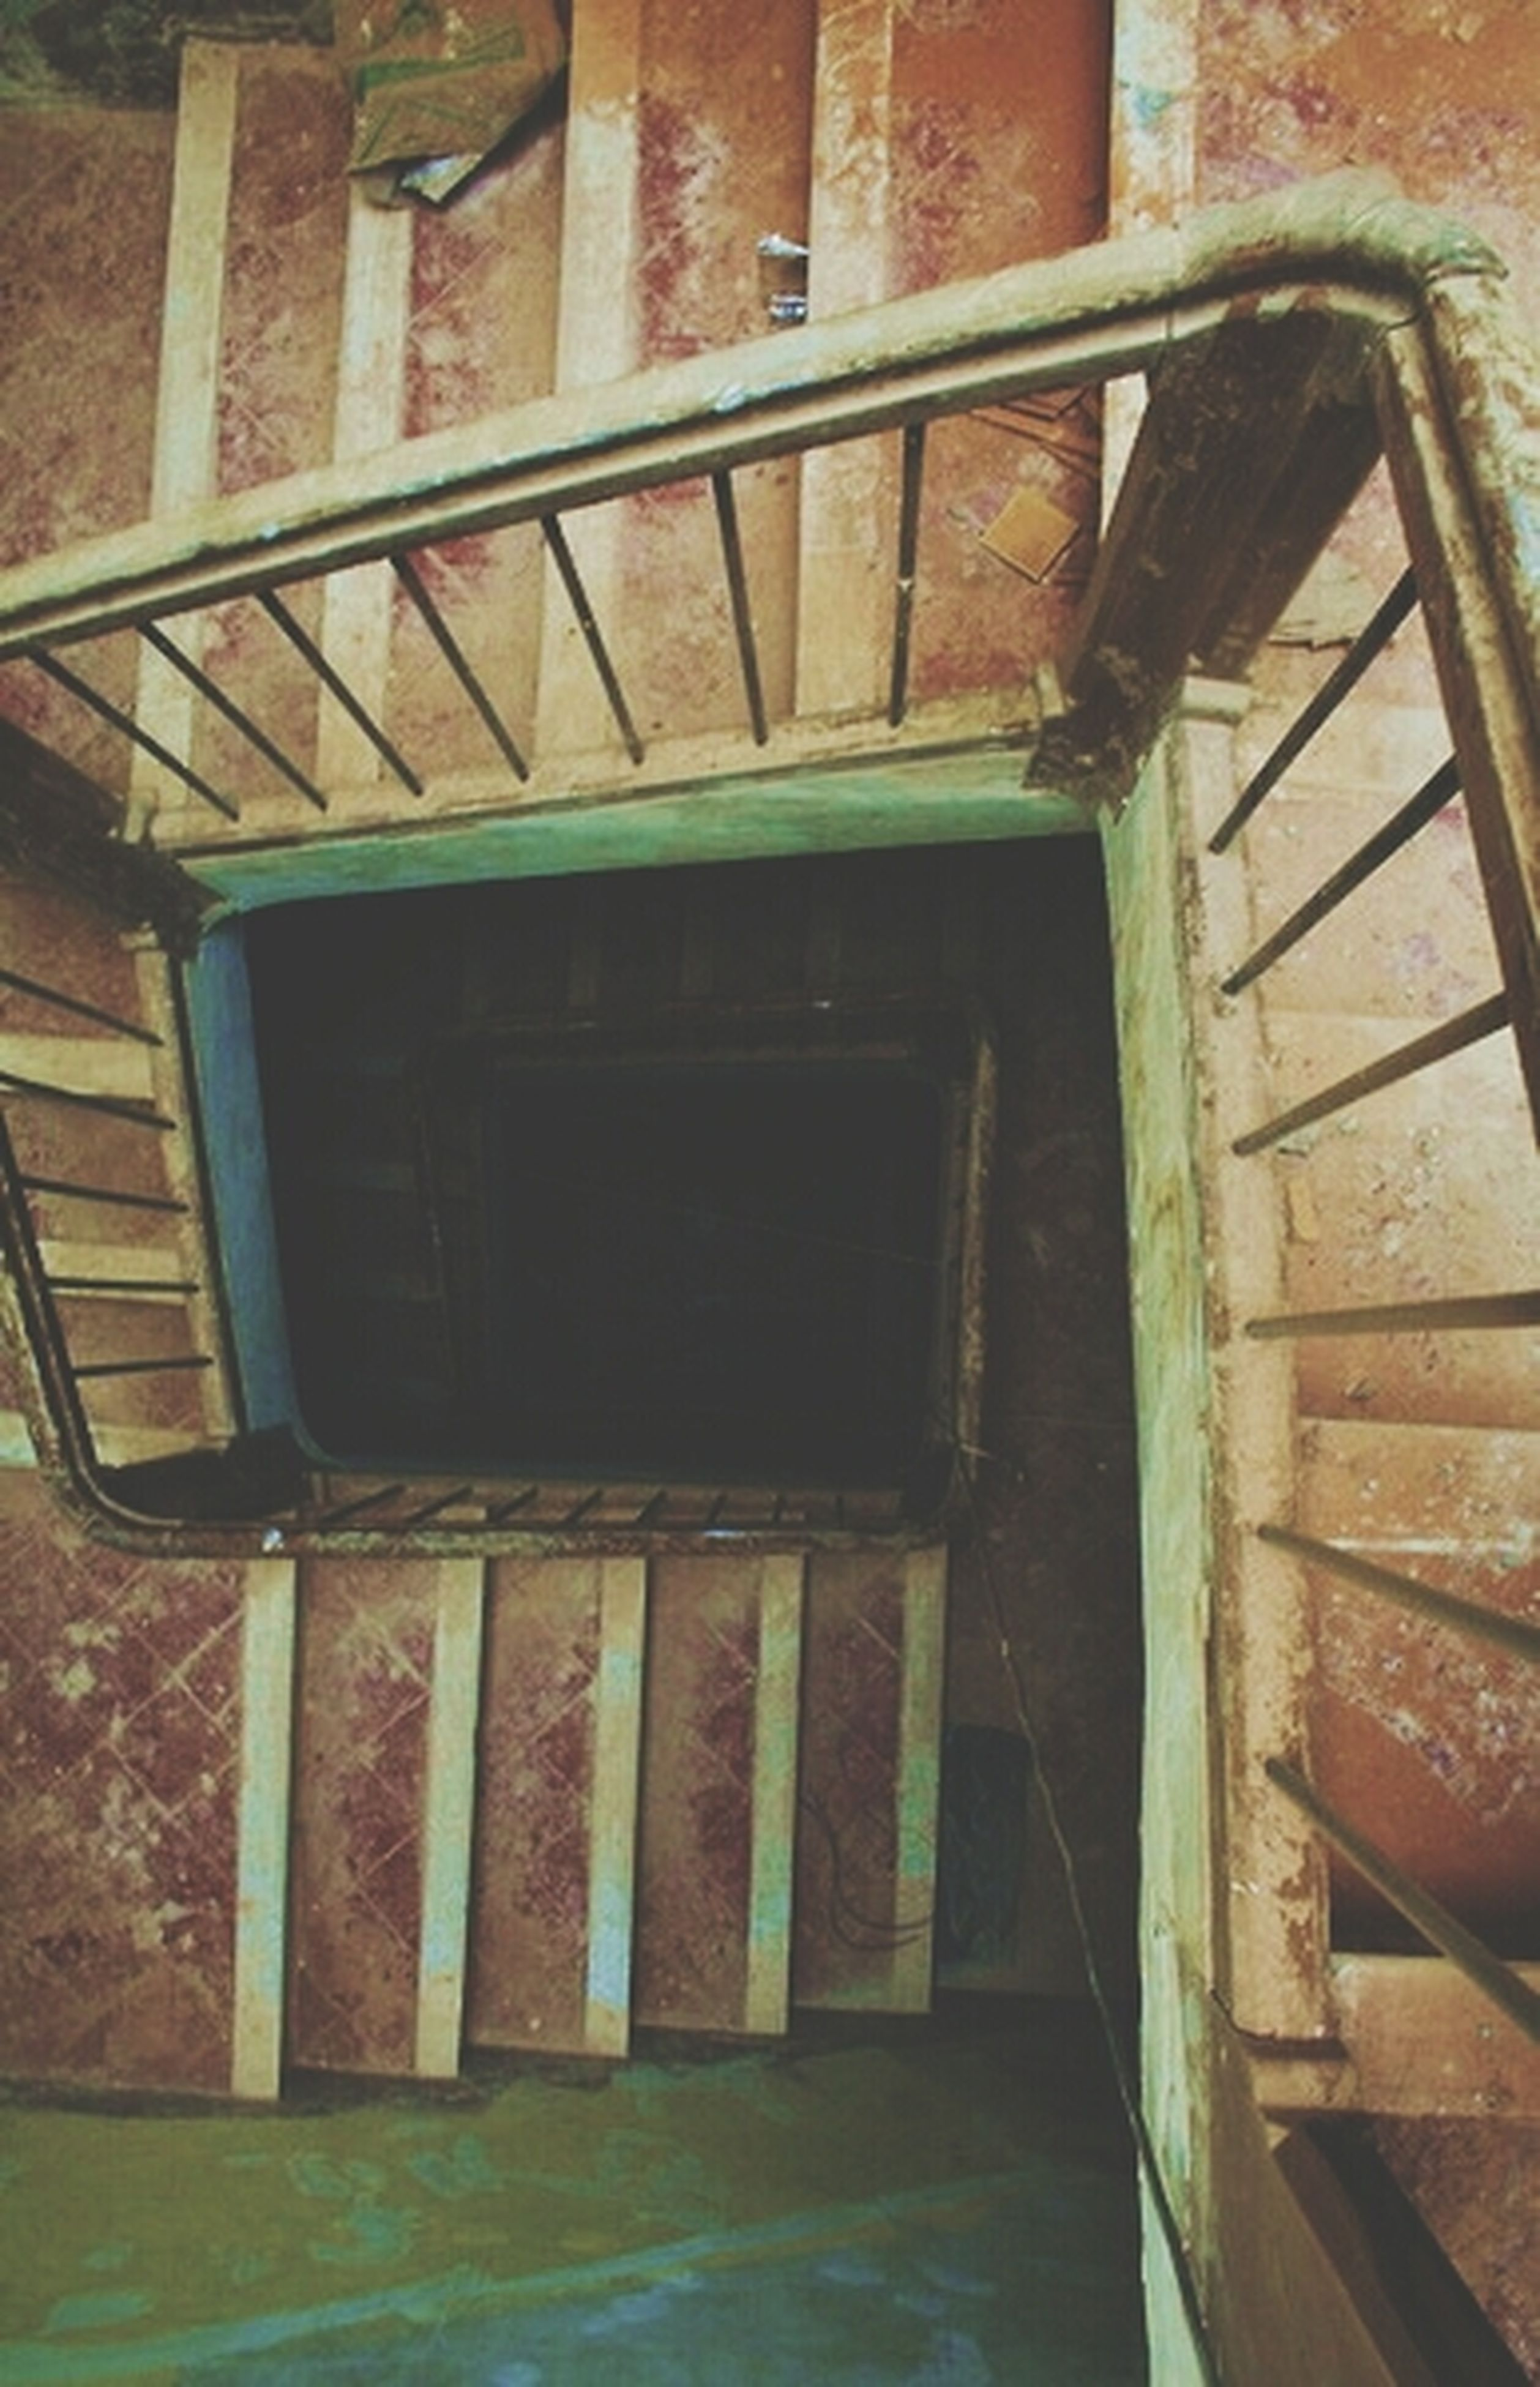 architecture, built structure, building exterior, railing, house, window, wood - material, old, steps, indoors, abandoned, staircase, steps and staircases, day, no people, low angle view, metal, building, residential structure, wooden